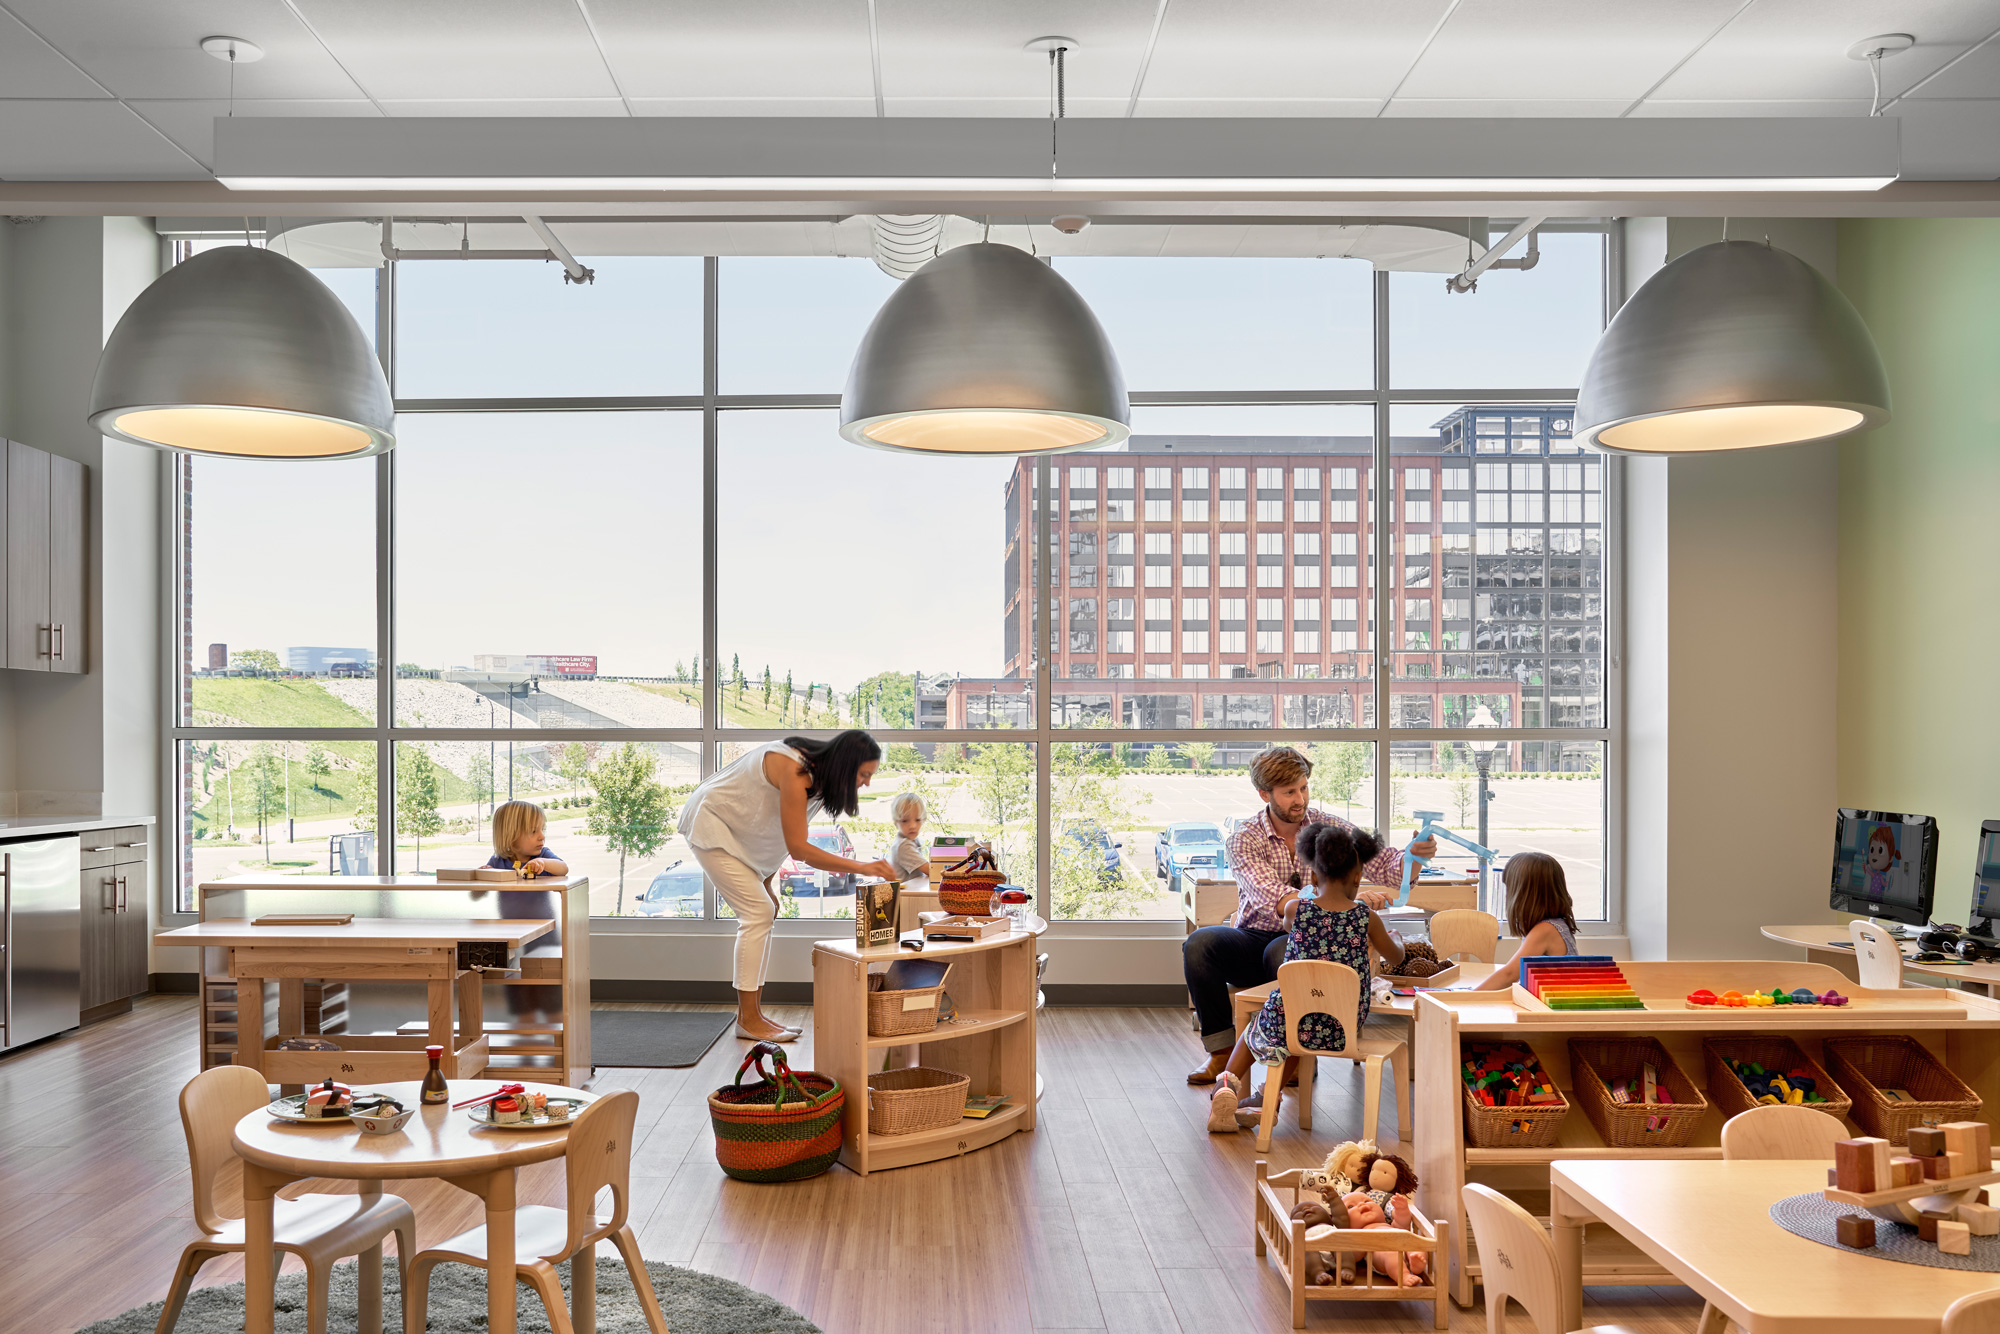 Architectural-Photograph-of-HCA-Childcare-Center-in-Nashville-Tennessee-by-Architectural-Photographer-Nick-McGinn-8.web.jpg